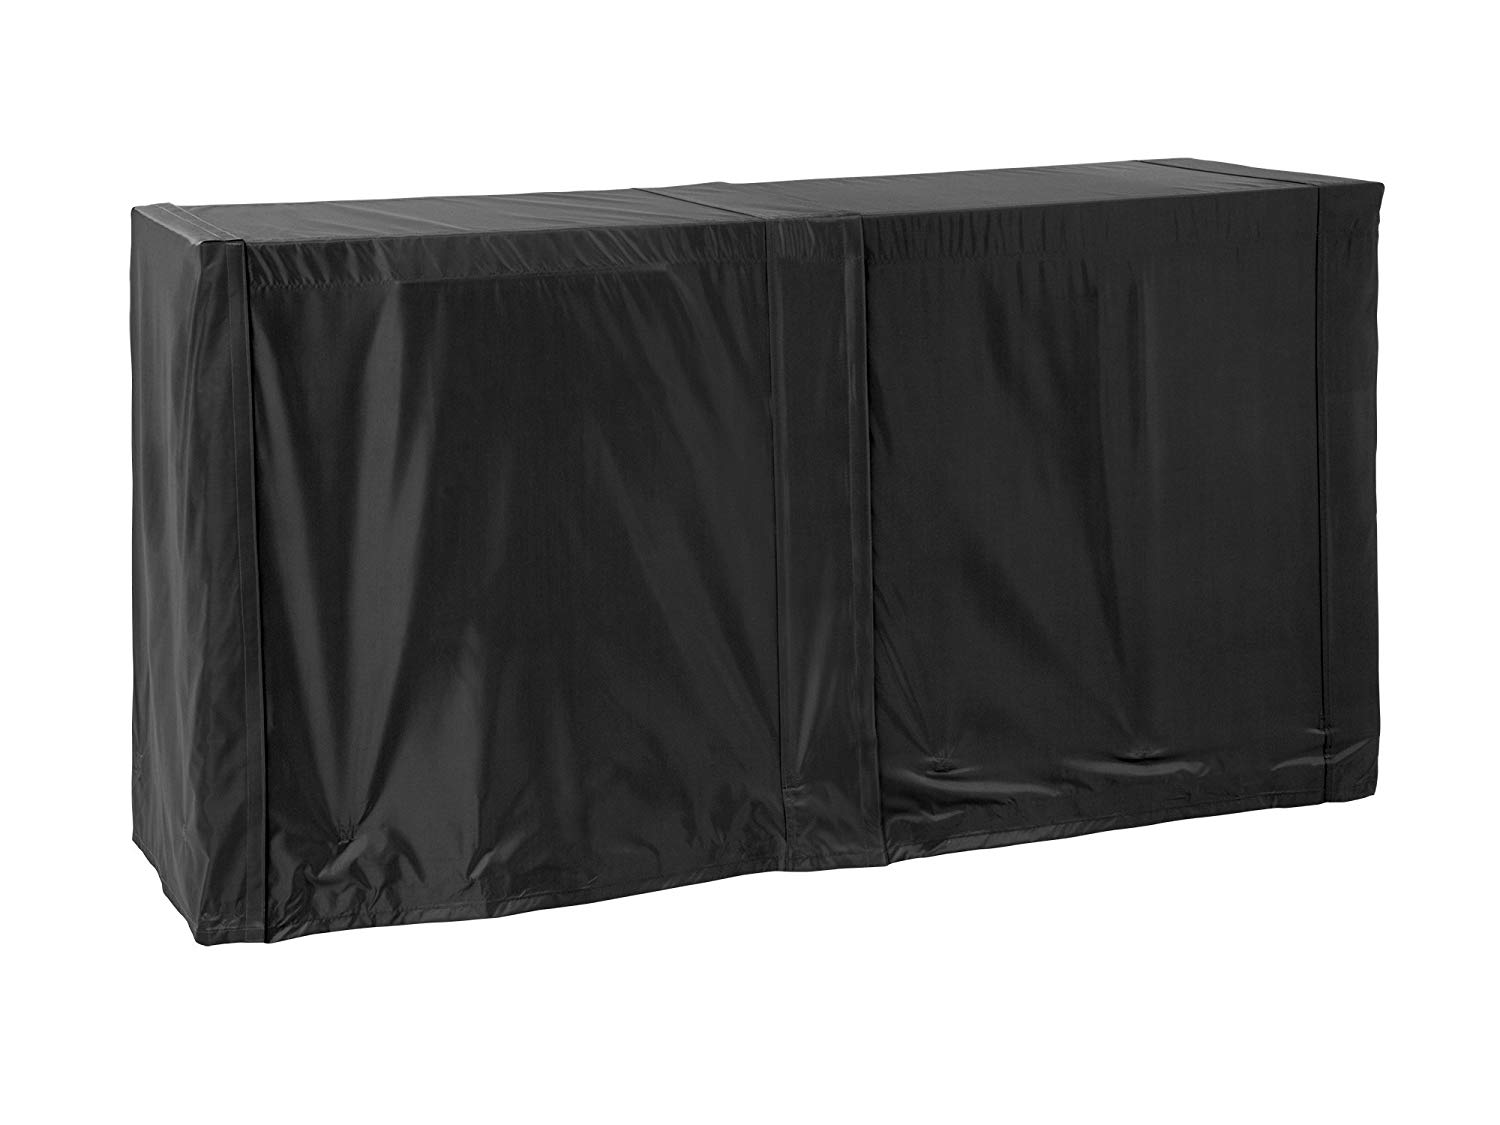 "NewAge Products 65880 Outdoor Kitchen 64"" Prep Table Cover, Black"